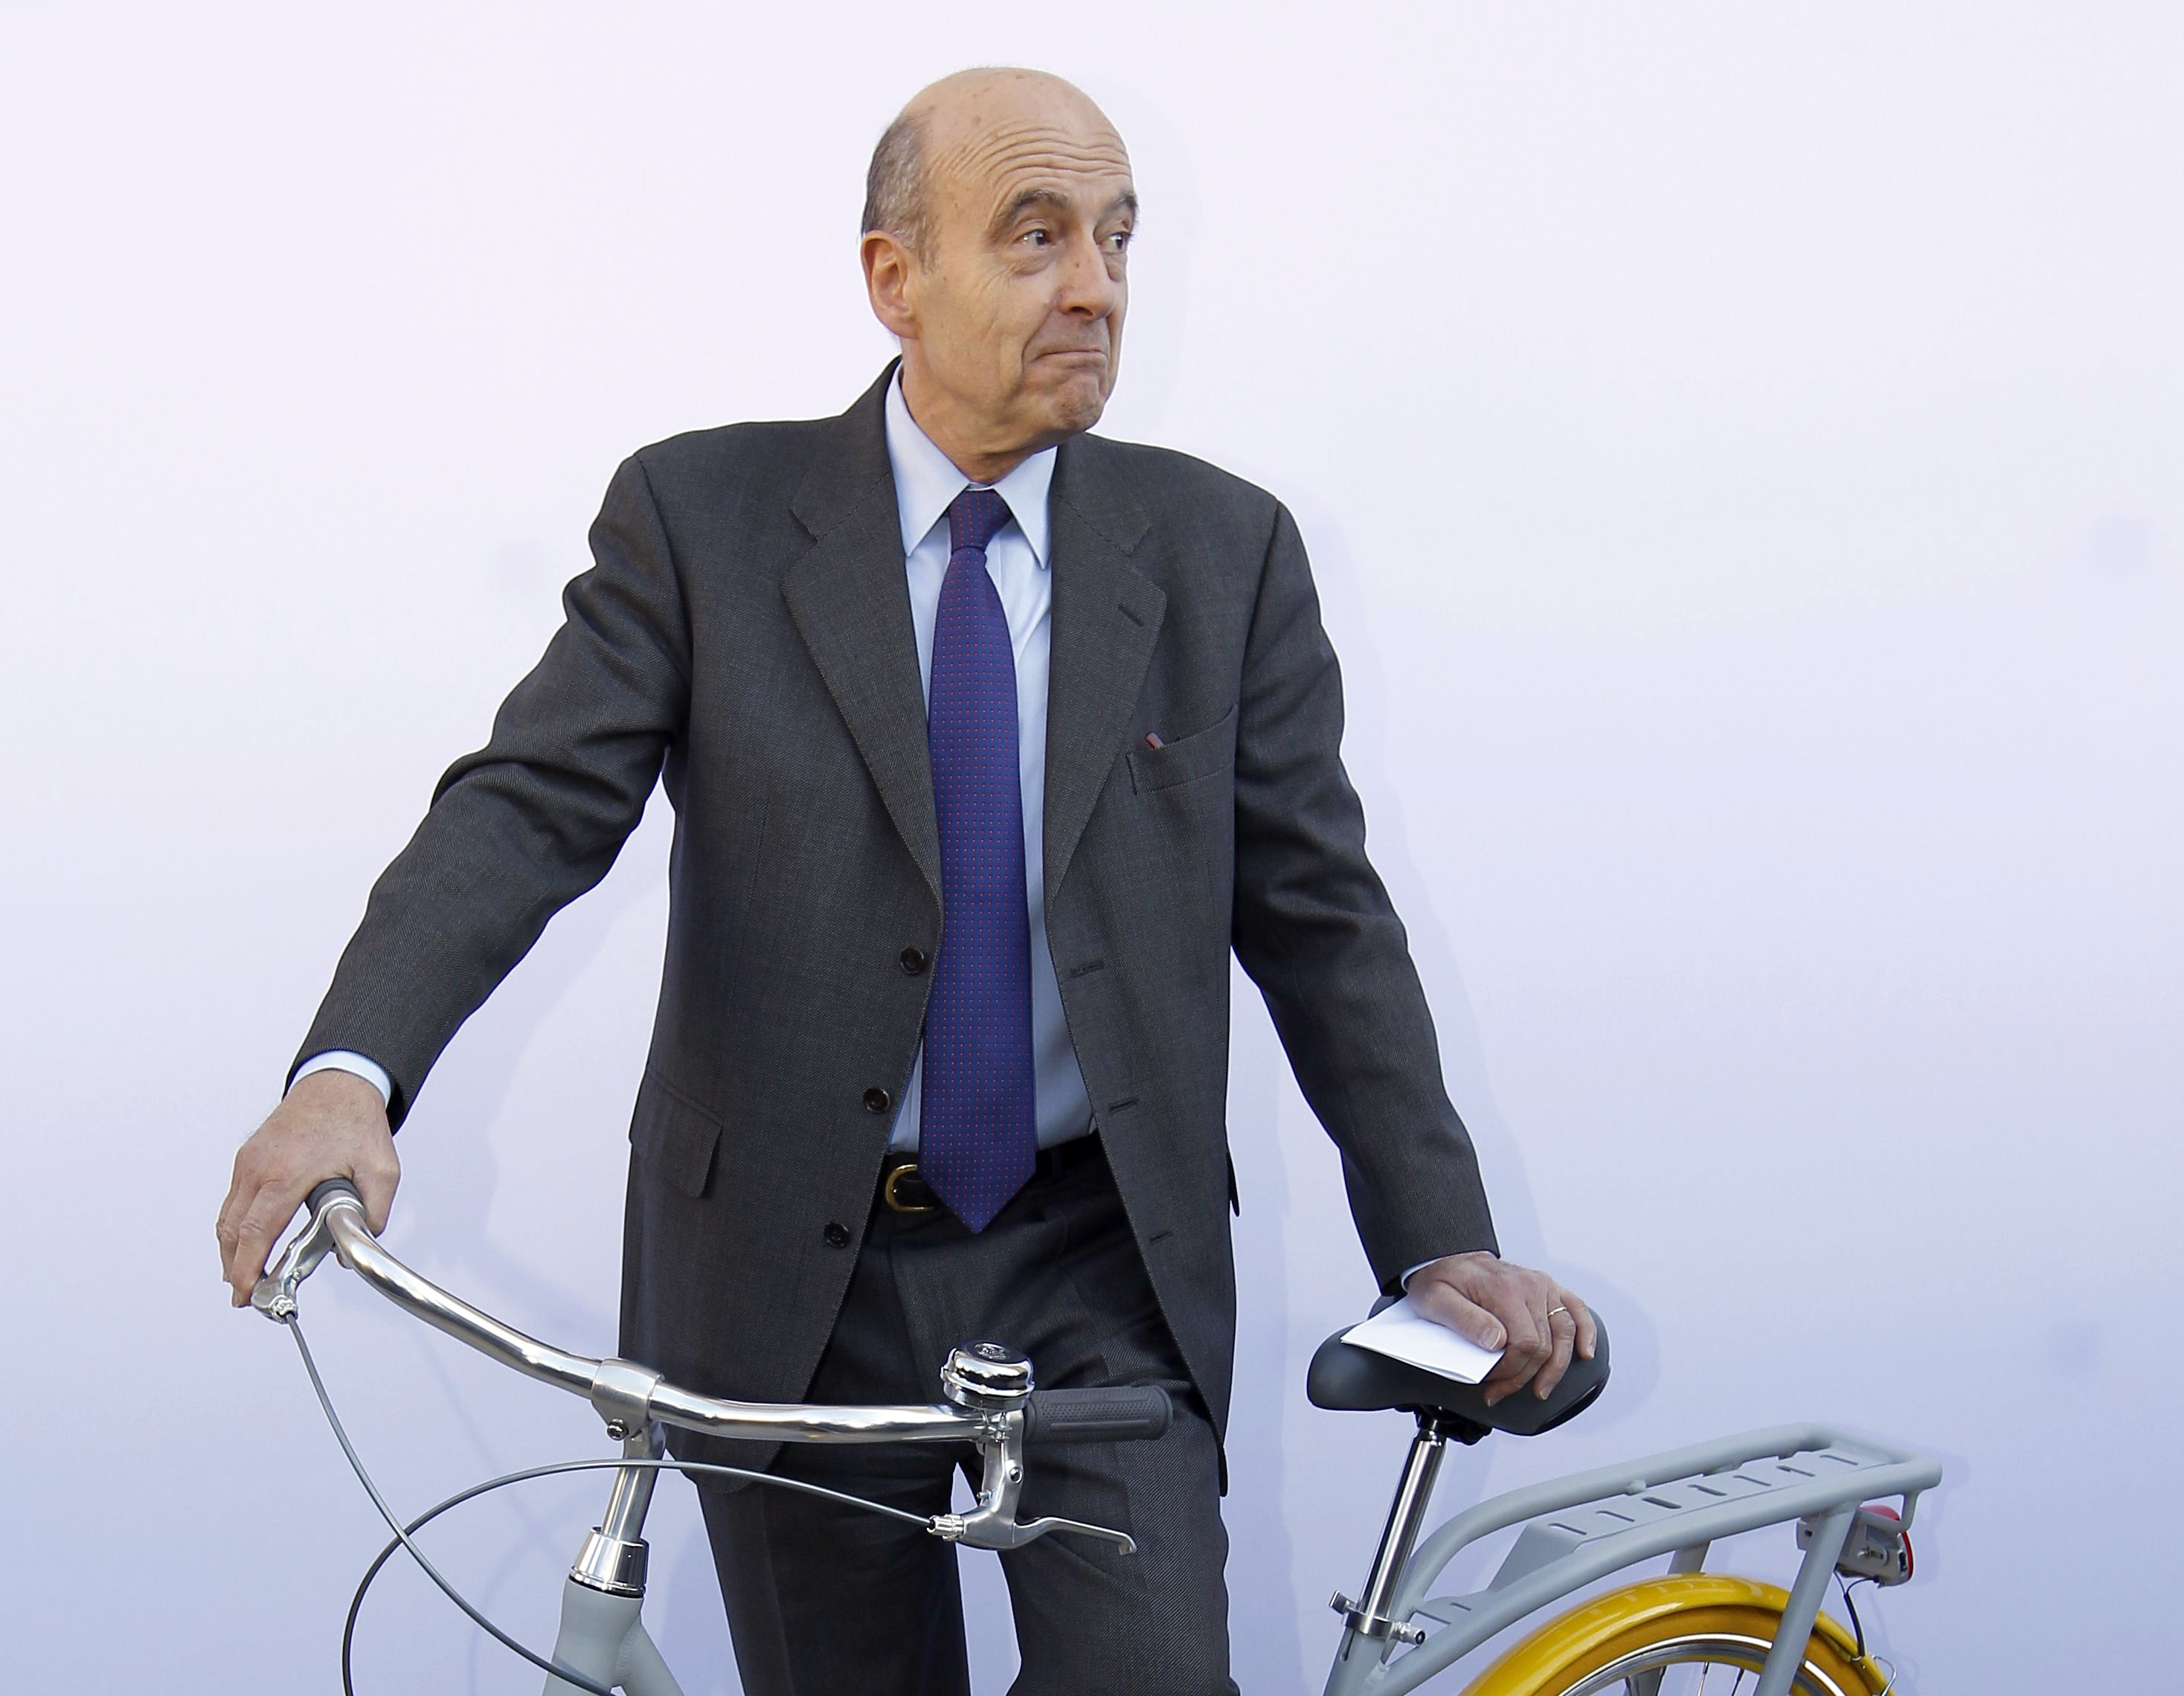 "Alain Juppe, Mayor of Bordeaux, poses with the ""Pibal"" public bicycle designed by French designer Philippe Starck during a presentation at the Bordeaux city hall February 19, 2013. The hybrid bicycle, which will be available to the public from September 2013, has a central platform allowing the rider to push it like a scooter during heavy traffic, and has fluorescent tyres for security at night. REUTERS/Regis Duvignau (FRANCE - Tags: BUSINESS SOCIETY)"